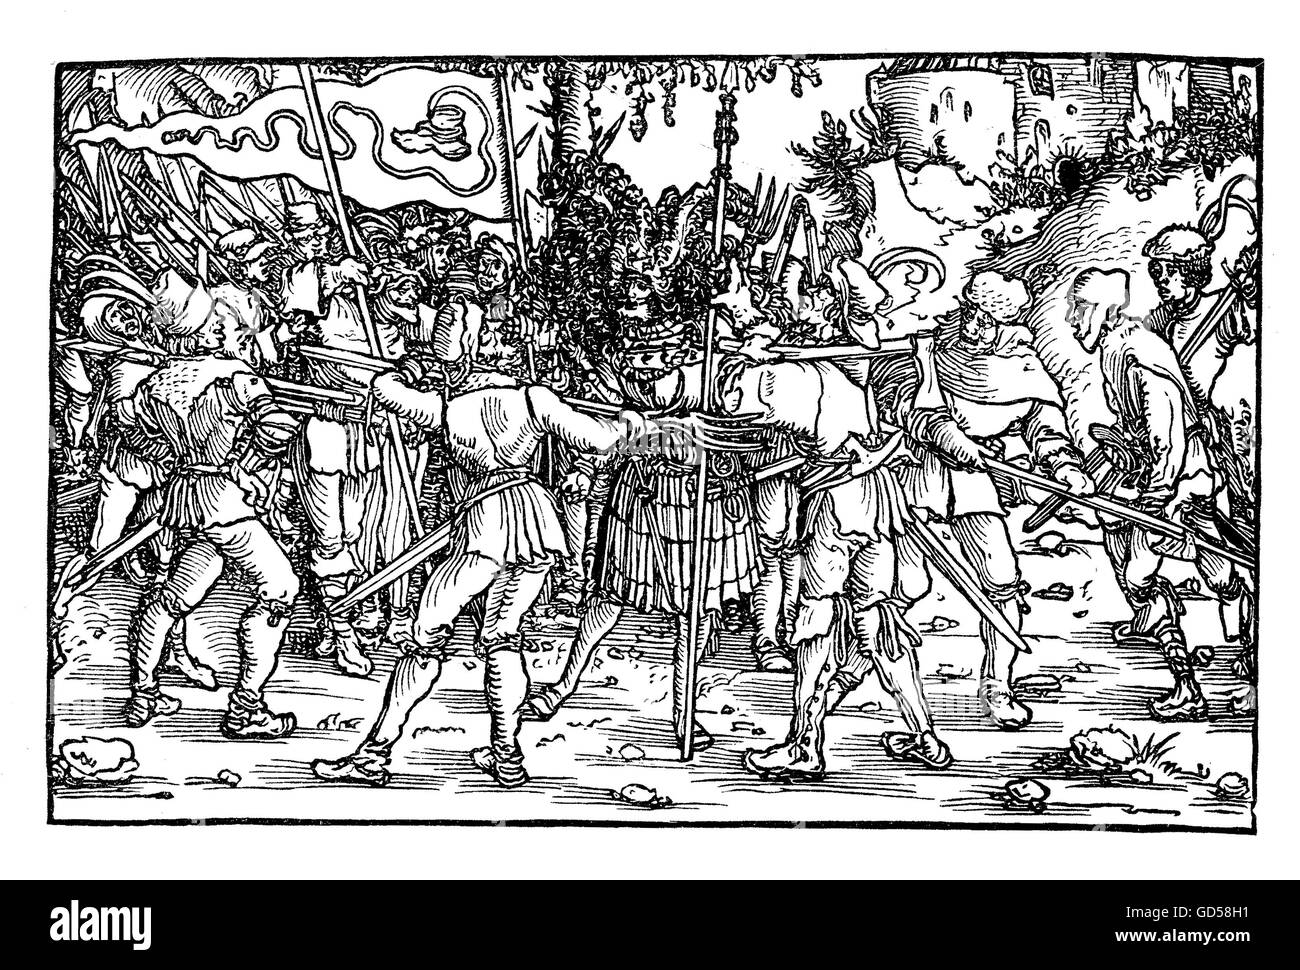 XVI century, scene of the German Peasant's war depicting sedictionists with the boot-bearing banner symbolizing - Stock Image